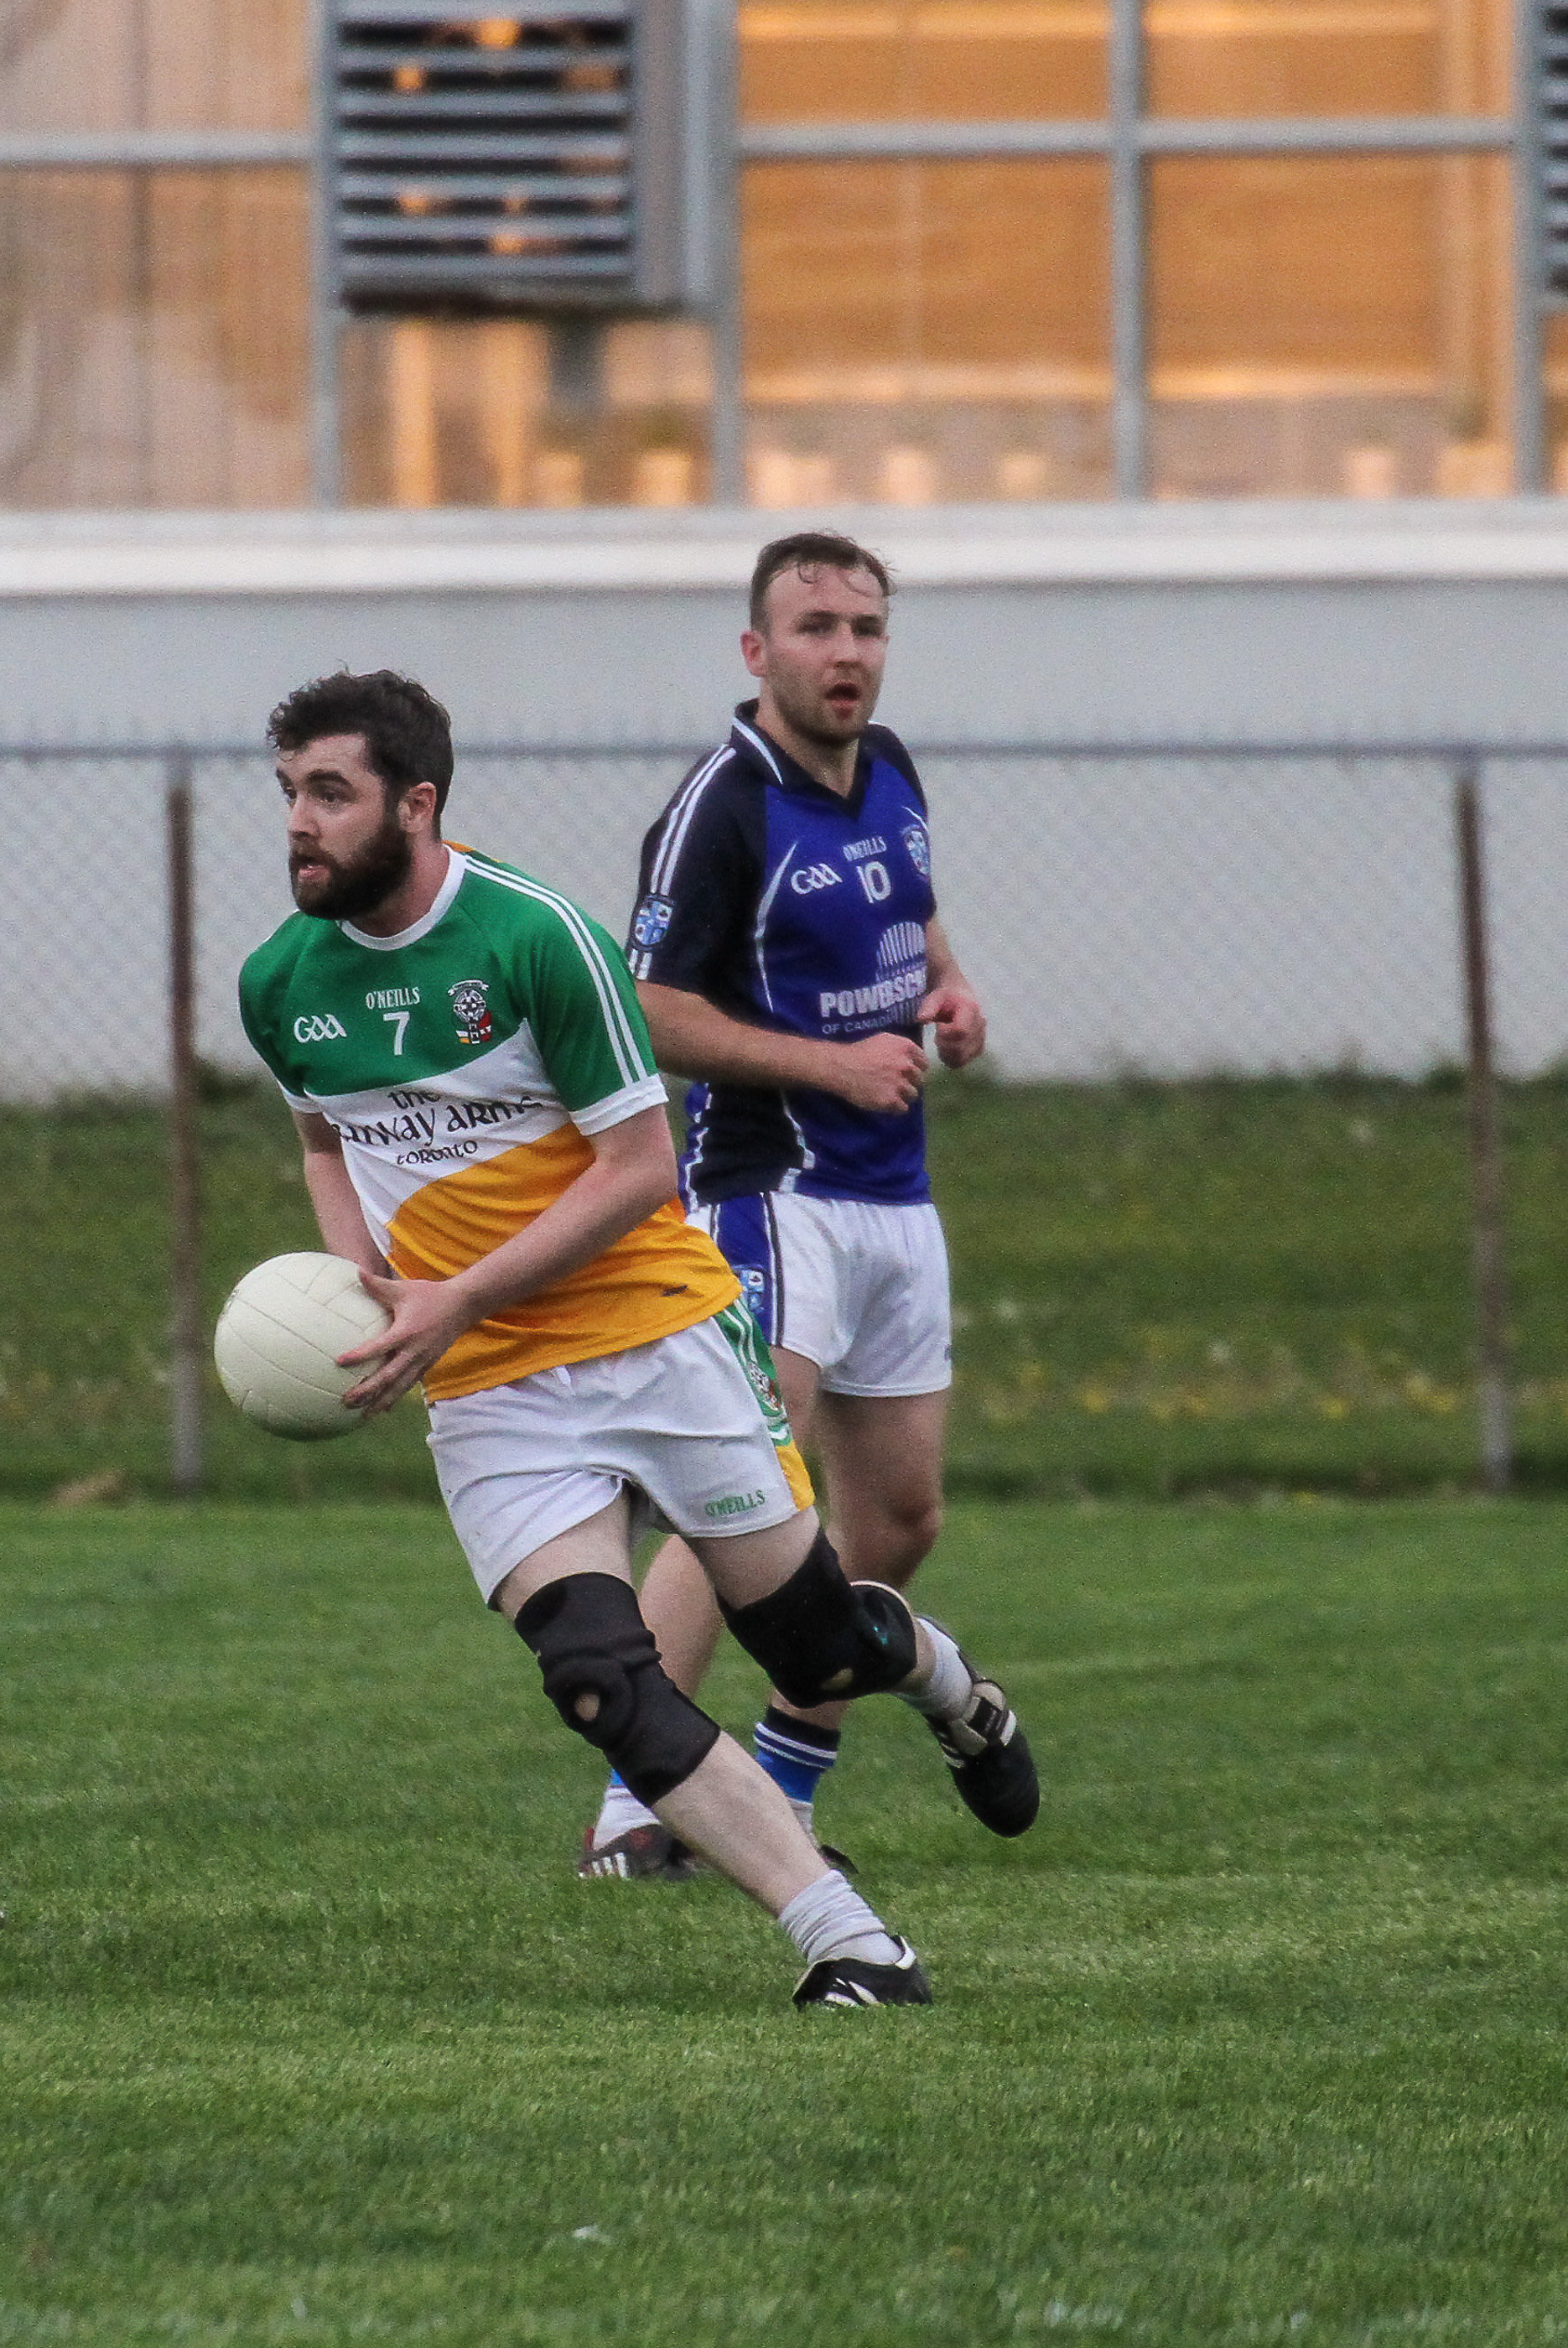 Toronto Gaels Gaelic Football Club - Montreal May Tournament 2015 - Fianals-GaelsvsEmmets(9of22).jpg